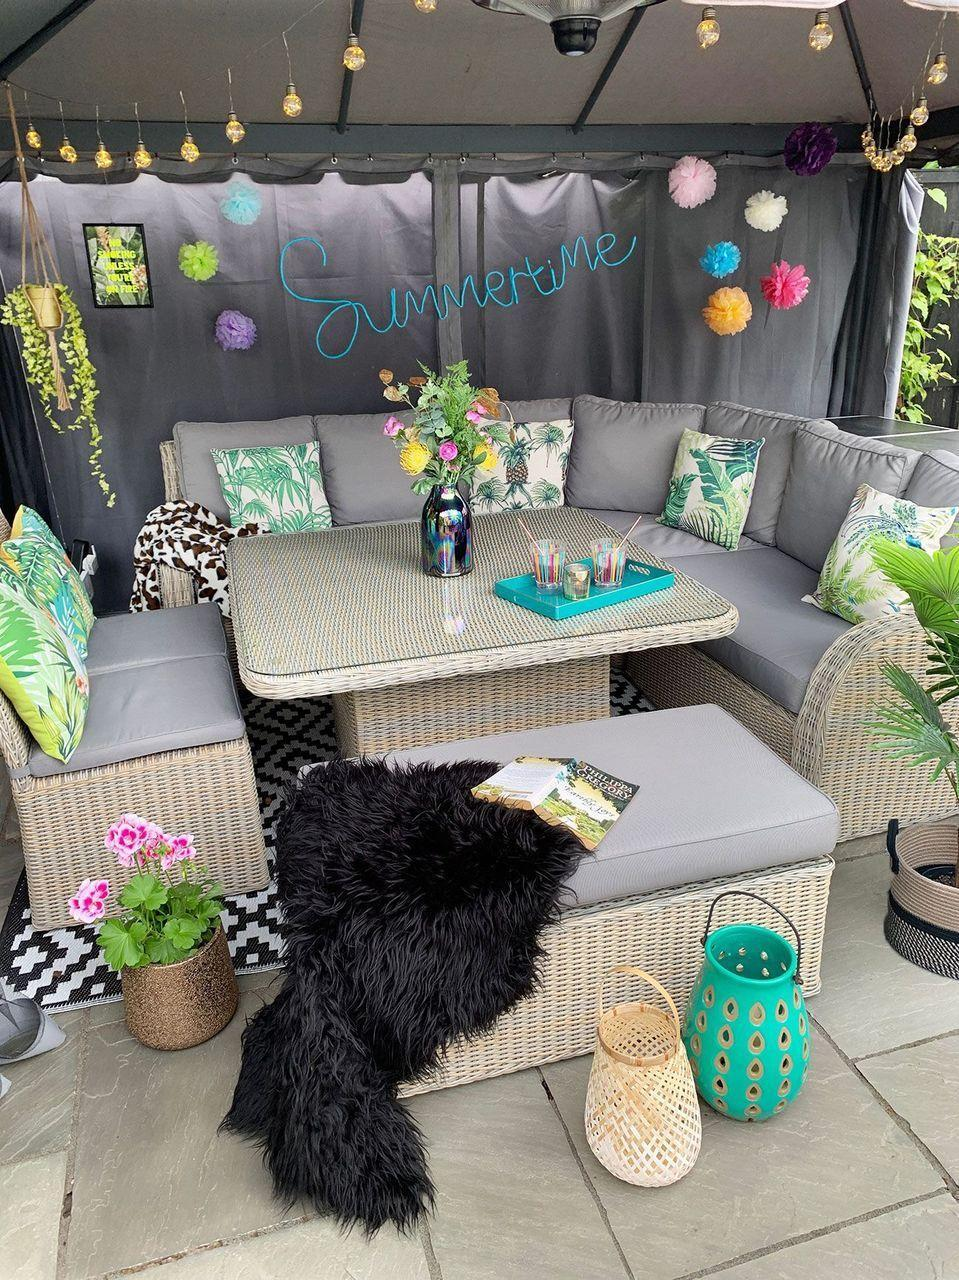 """<p>It's summertime and the living's easy thanks to this colorful and sunny gazebo refresh. But this charming hideaway can be enjoyed year-round, thanks to a fabric awning. </p><p><strong>Get the look at <a href=""""https://www.caradise.co.uk/colourful-garden-patio-gazebo-decor-on-a-budget/"""" rel=""""nofollow noopener"""" target=""""_blank"""" data-ylk=""""slk:Caradise"""" class=""""link rapid-noclick-resp"""">Caradise</a>. </strong></p><p><a class=""""link rapid-noclick-resp"""" href=""""https://www.amazon.com/Birthday-Celebration-Halloween-Christmas-Decoration/dp/B075BHNS7T/?tag=syn-yahoo-20&ascsubtag=%5Bartid%7C10050.g.30932979%5Bsrc%7Cyahoo-us"""" rel=""""nofollow noopener"""" target=""""_blank"""" data-ylk=""""slk:SHOP PAPER POM-POMS"""">SHOP PAPER POM-POMS</a></p>"""